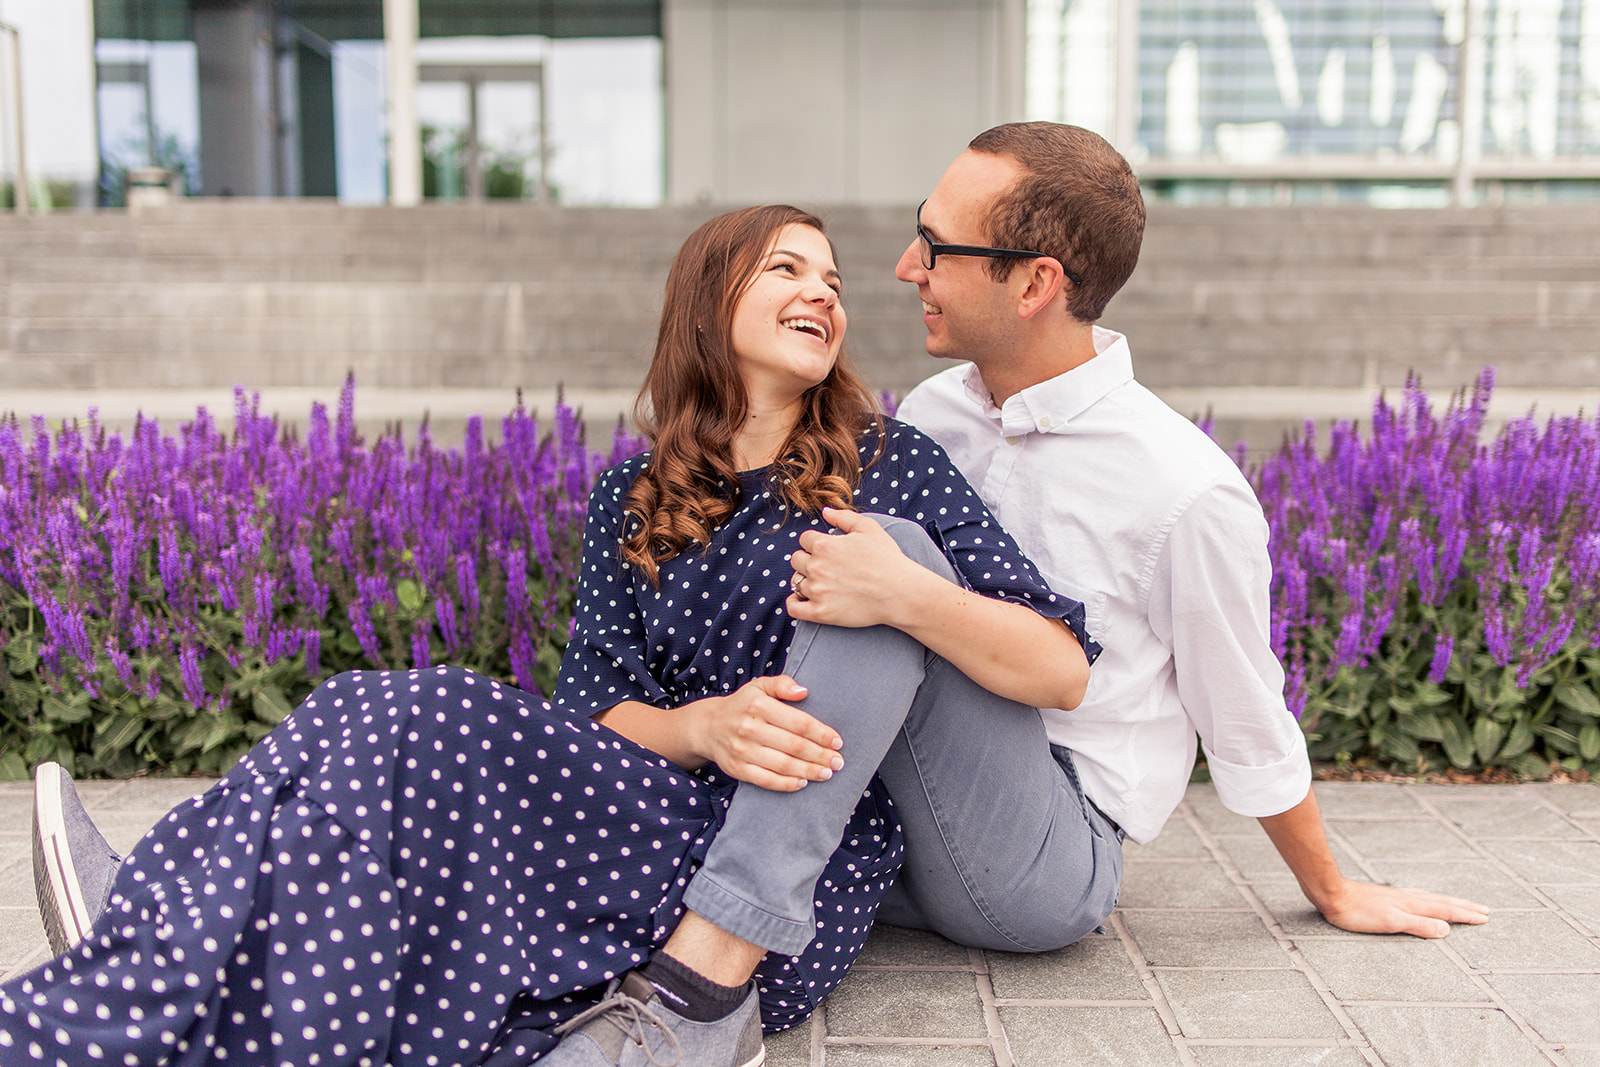 Lavender engagement photos, candid engagement photos, laughing engagement photos, NuSkin Provo, Forge Jewelry